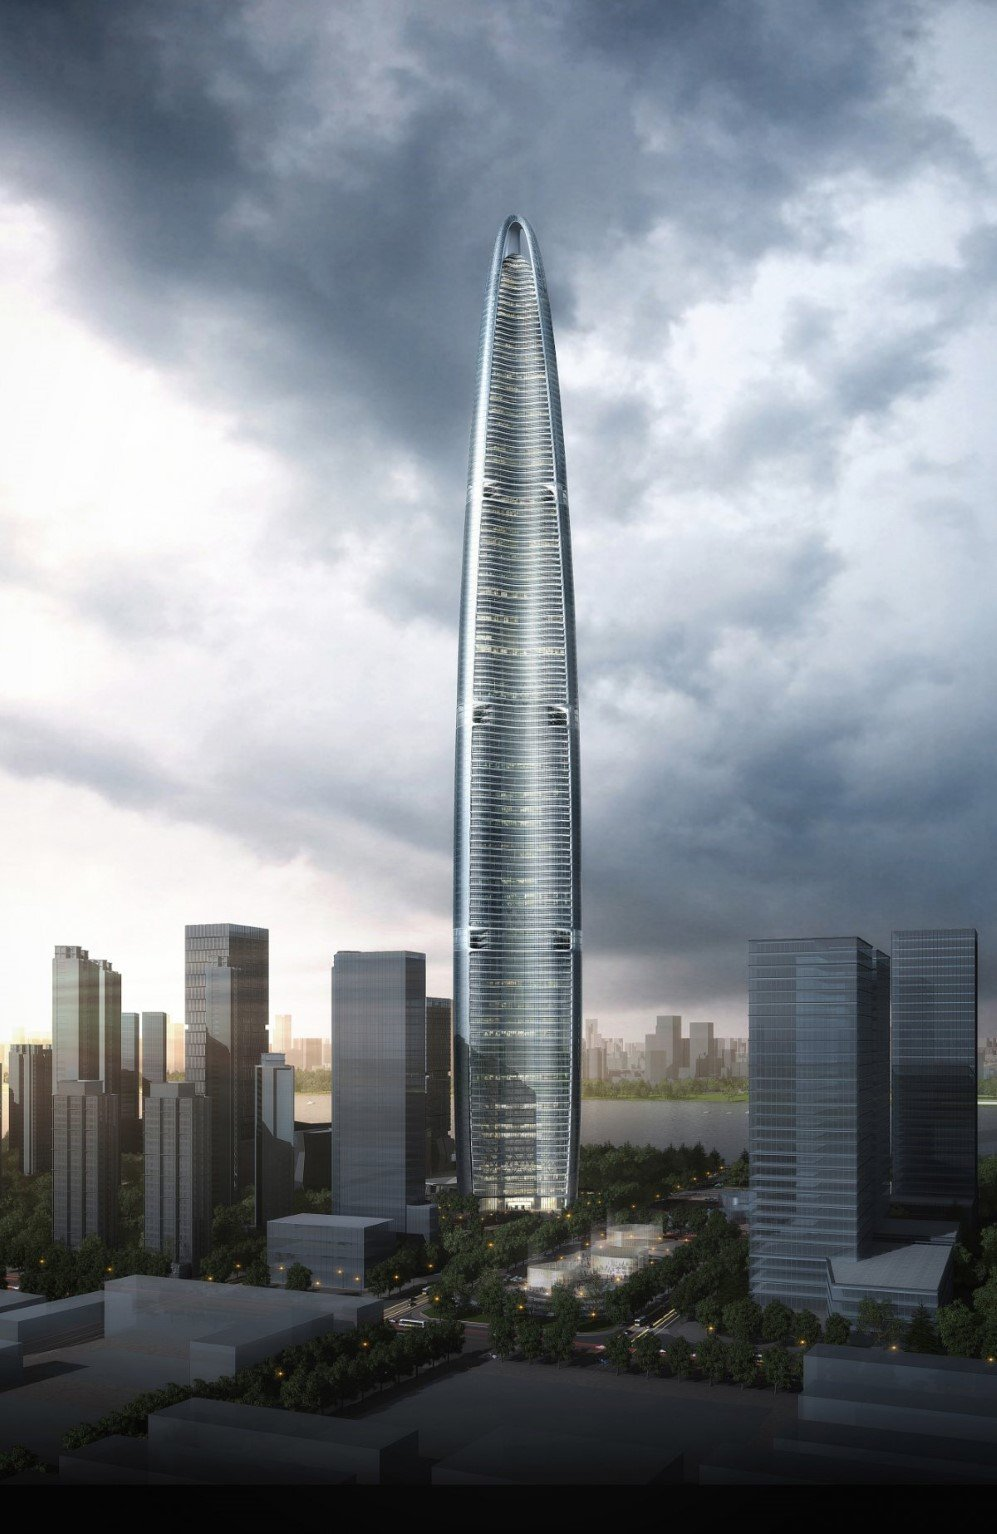 4. Wuhan Greenland Centre, Wuhan, China